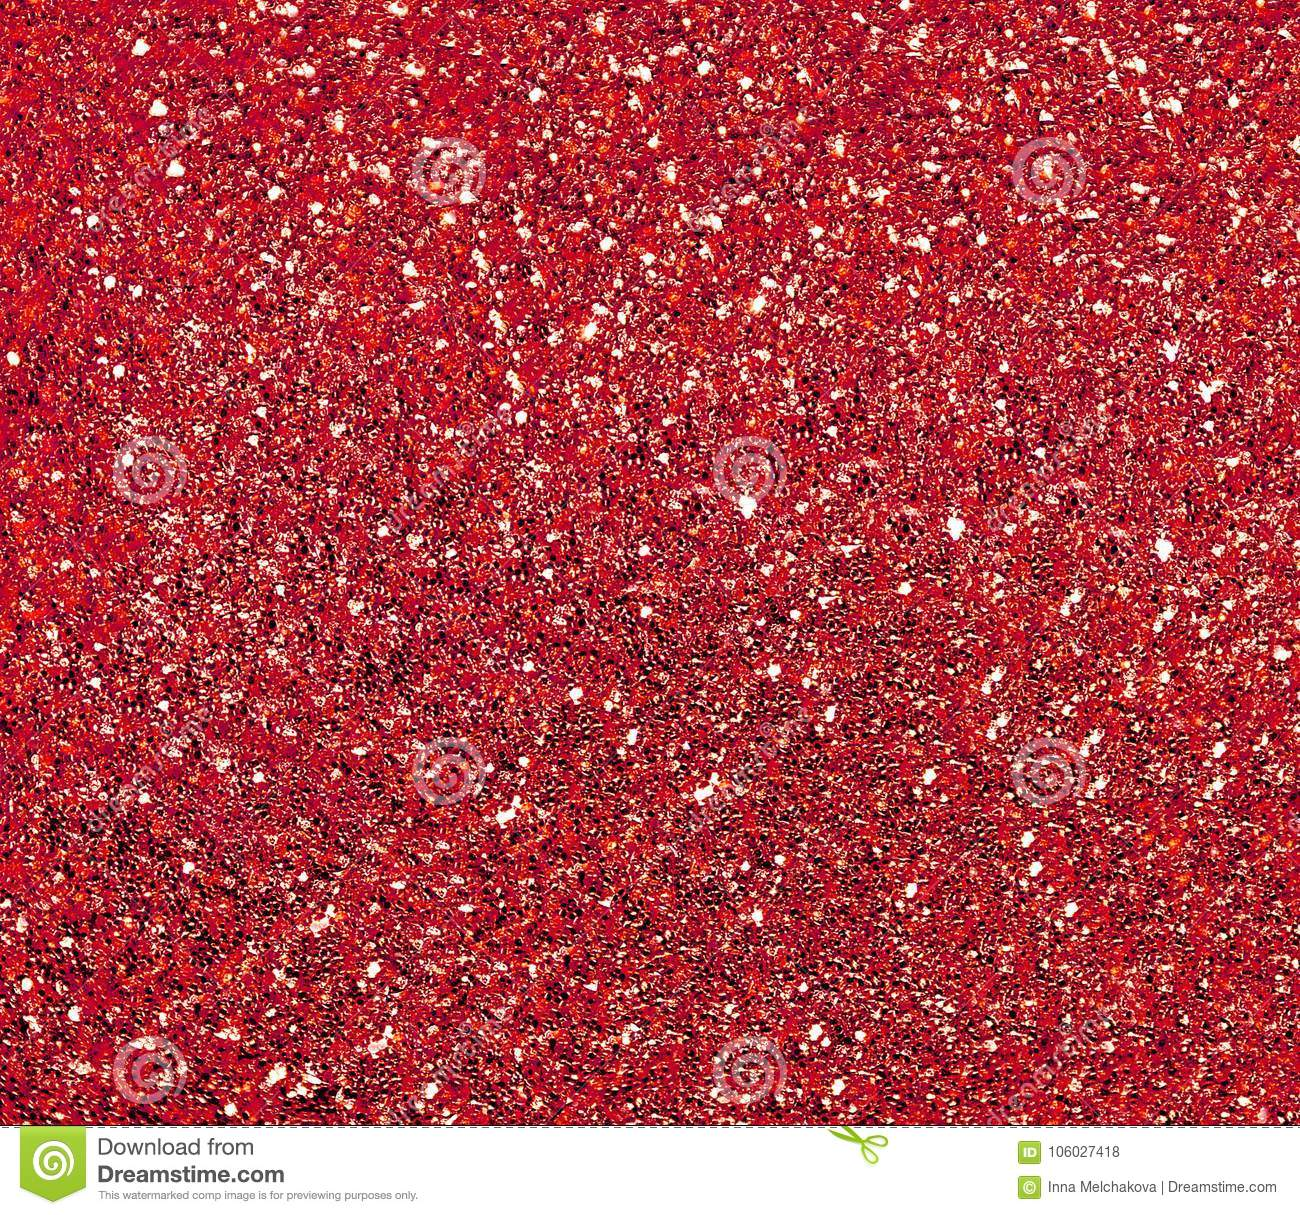 Sparkling red background with large sequins